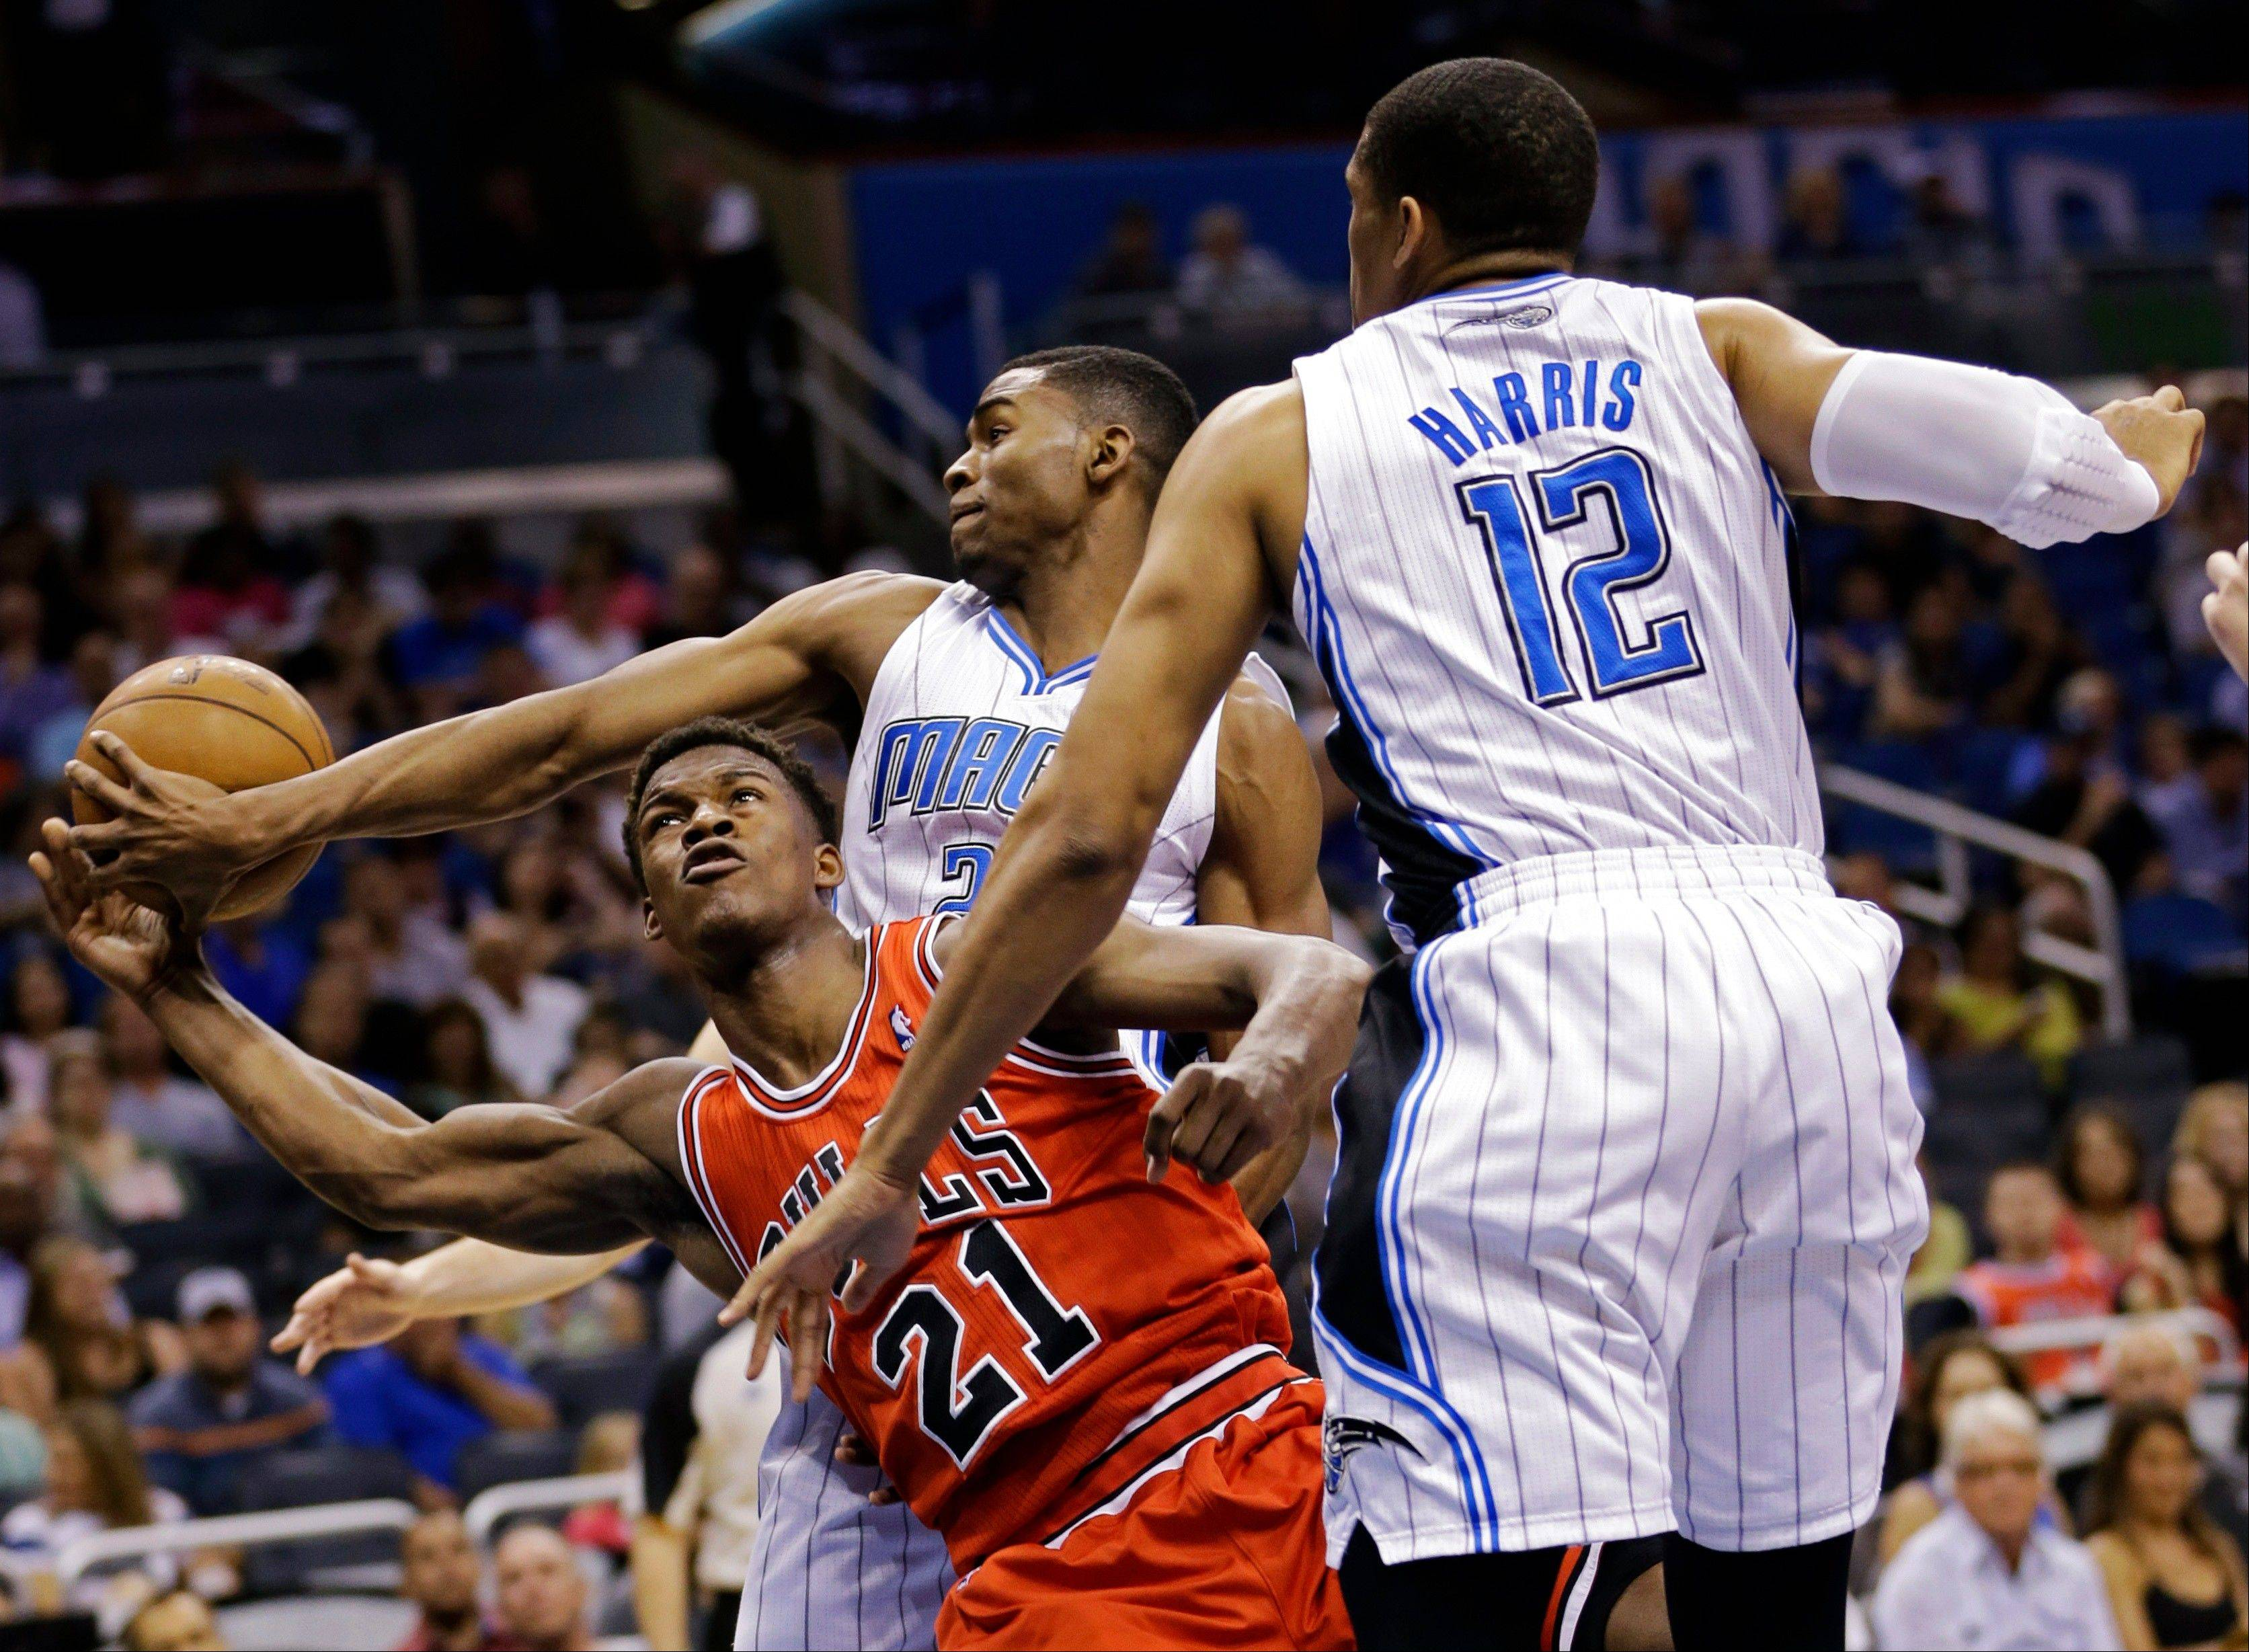 The Bulls' Jimmy Butler (21) loses the ball under pressure from Orlando Magic's Maurice Harkless, center, and Tobias Harris (12) during the first half of the game Monday in Orlando.